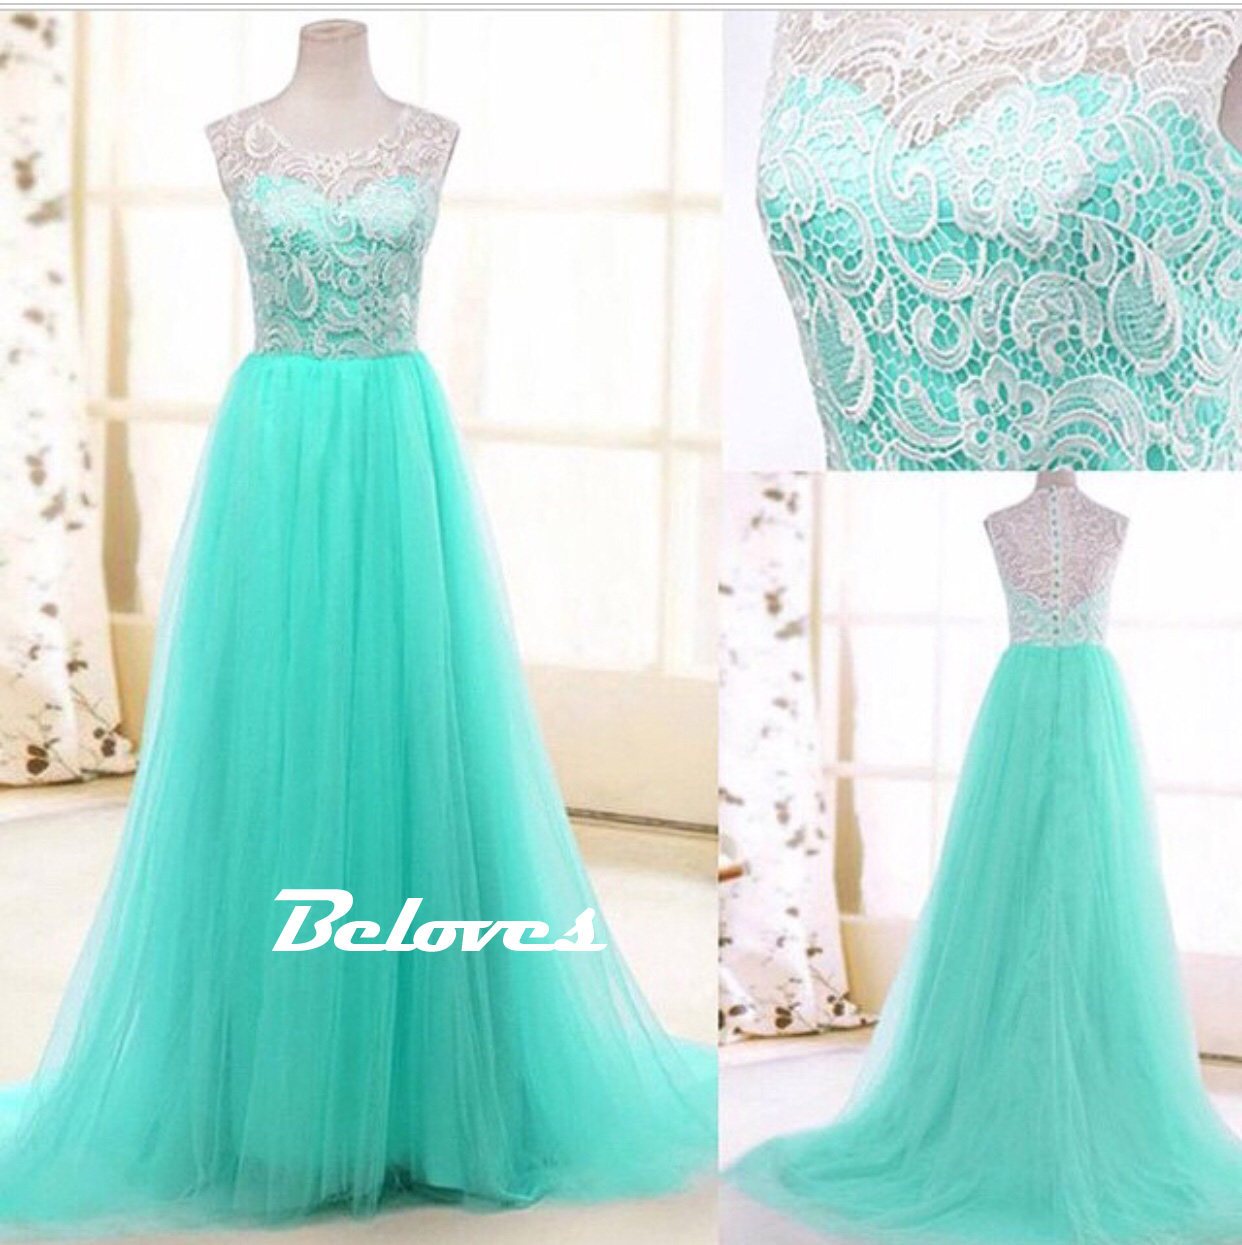 2015 Mint Tulle A Line Prom Dress With Lace Bodice · Beloves ...